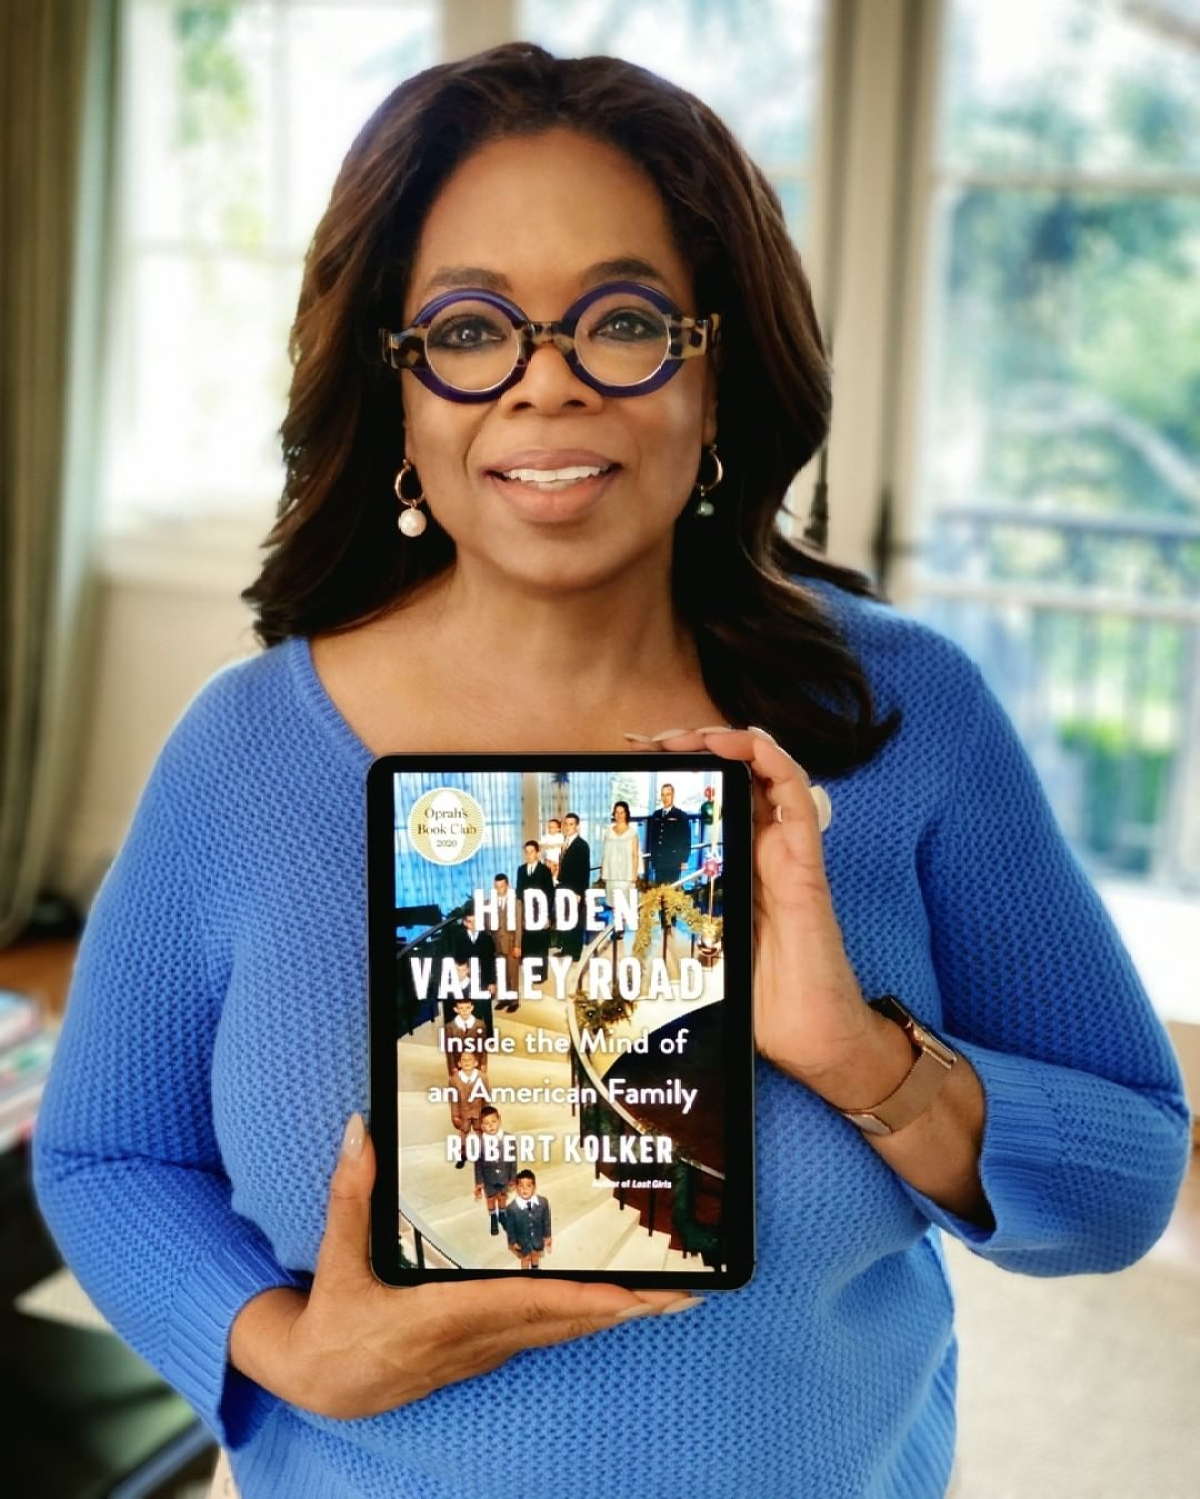 World Book Day 2020: From Emma Watson to Oprah Winfrey; book clubs founded and run by celebrities